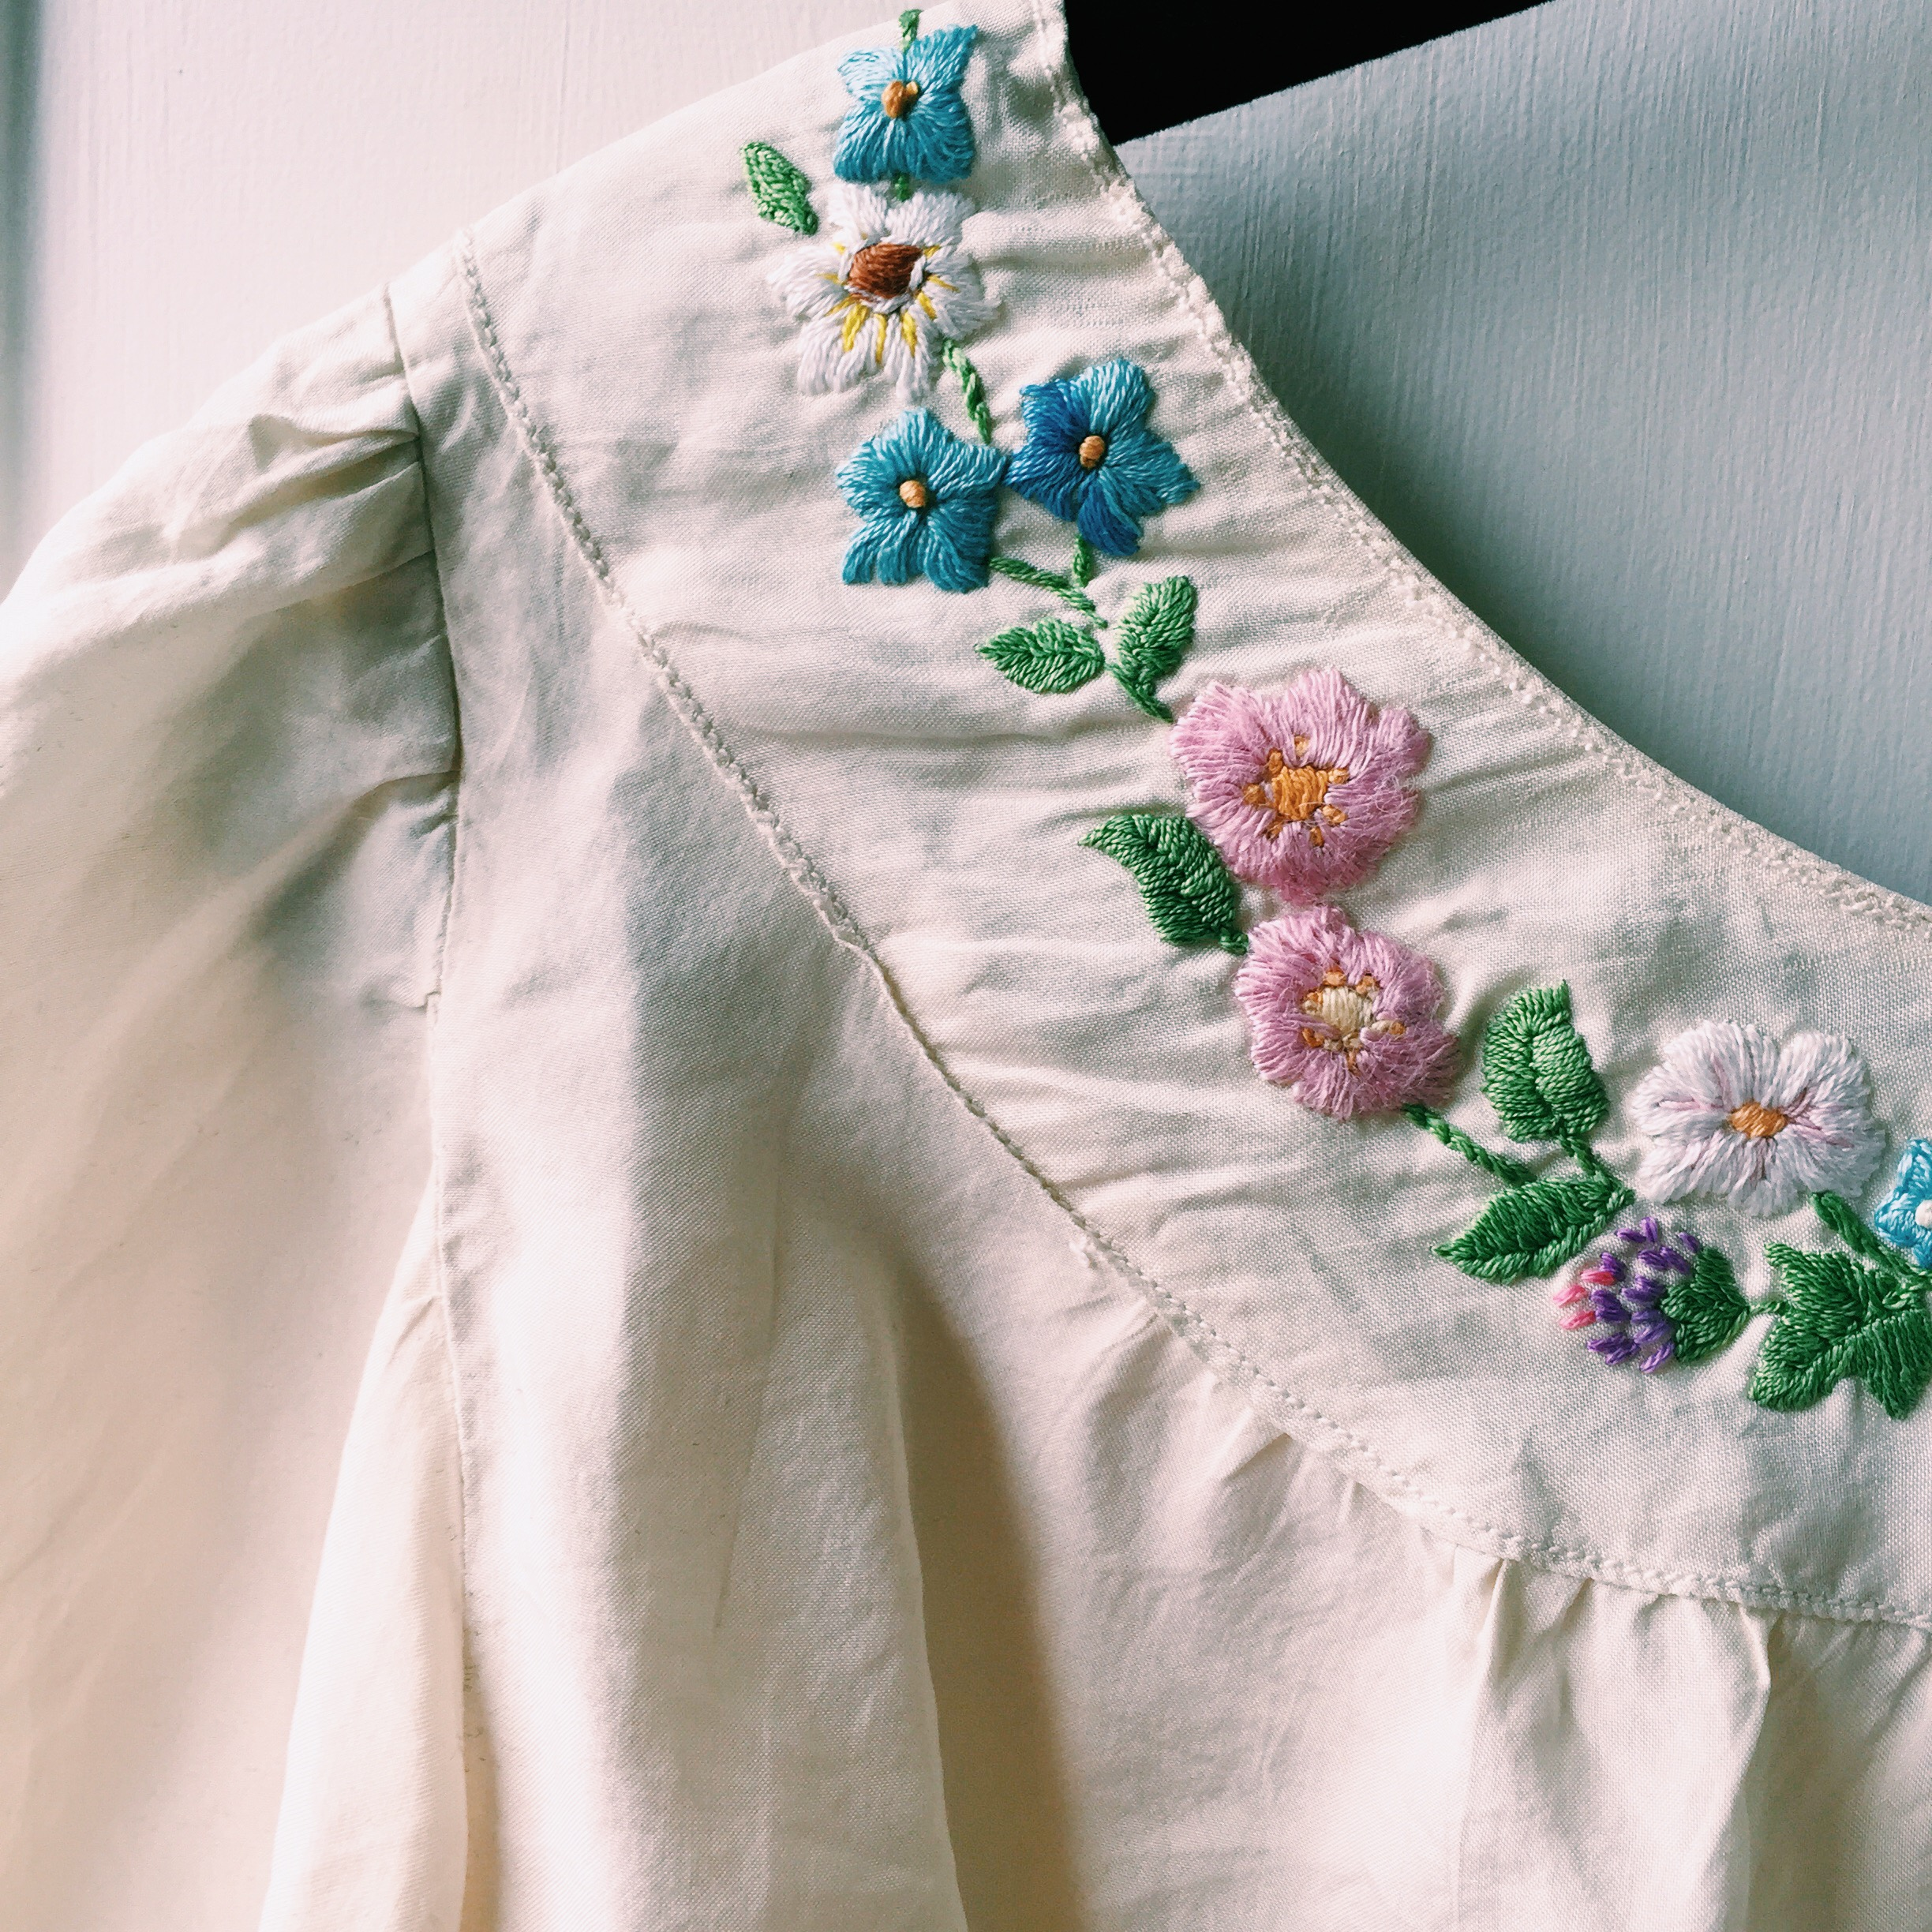 A vintage hand-embroidered blouse from the 1950s